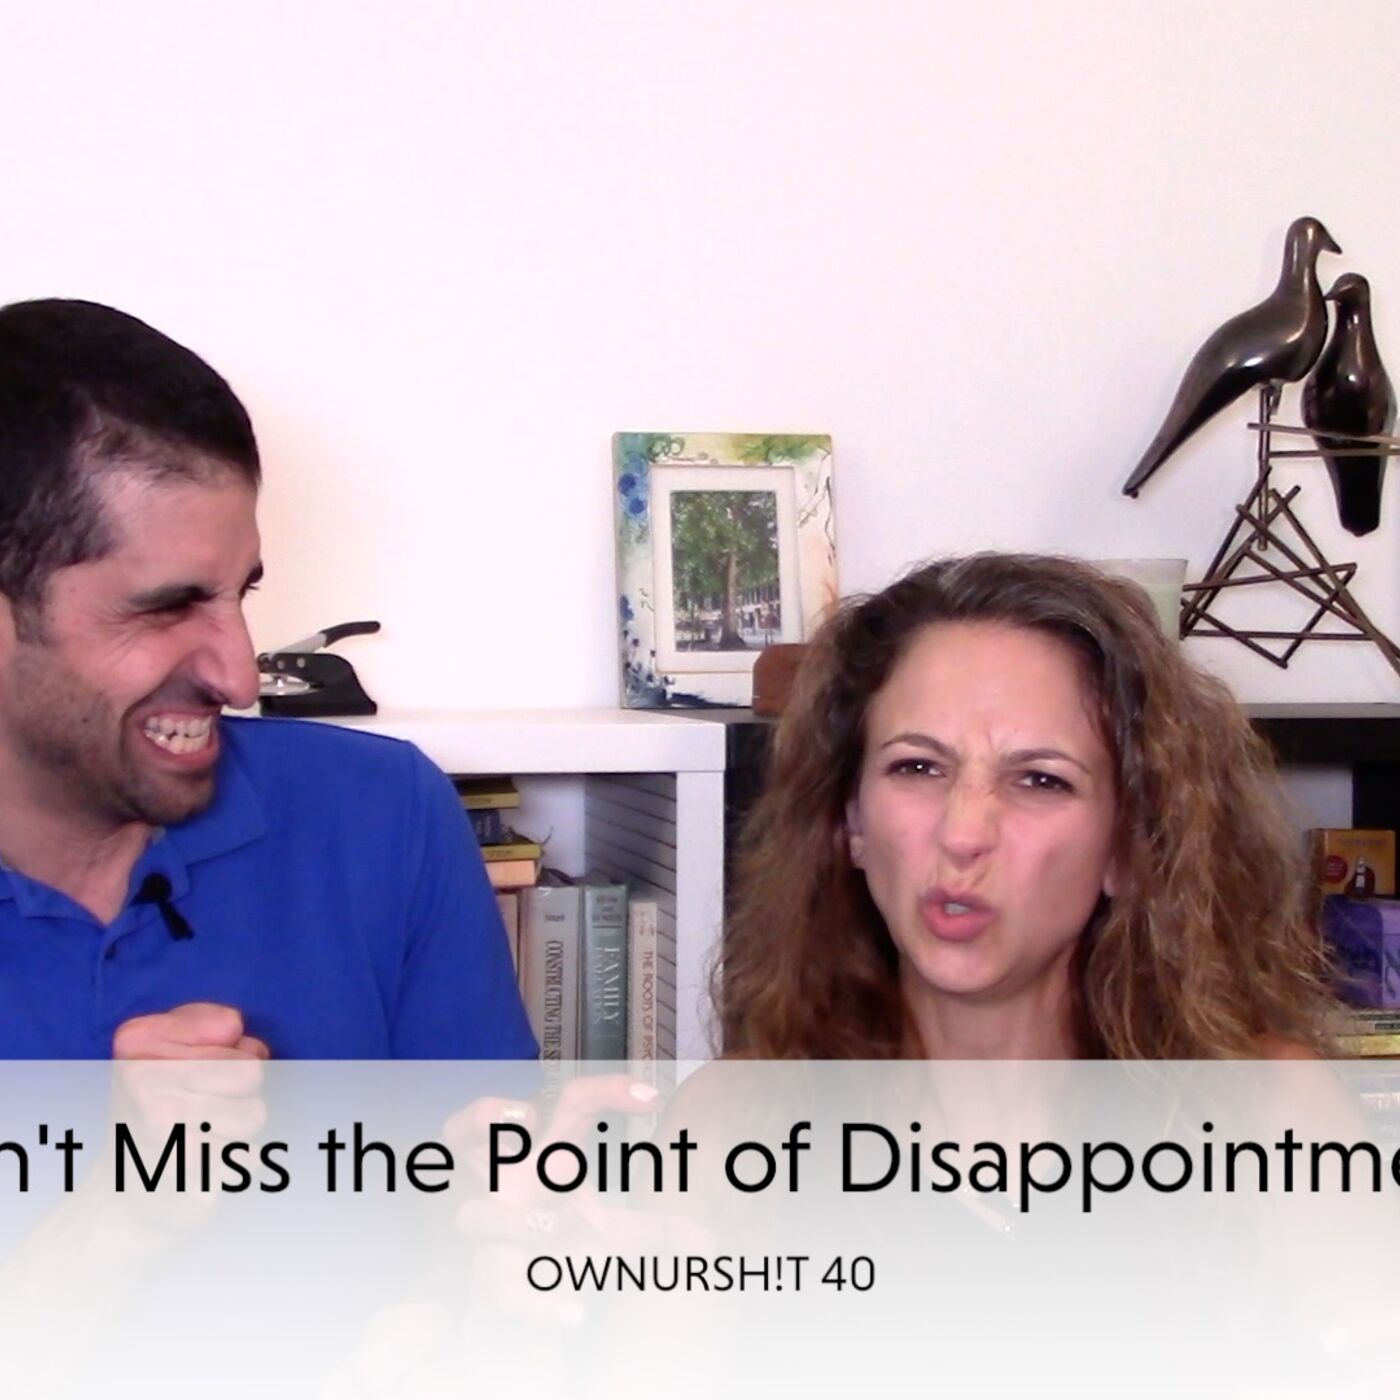 OWNURSH!T 40 - Don't Miss the Point of Disappointment.